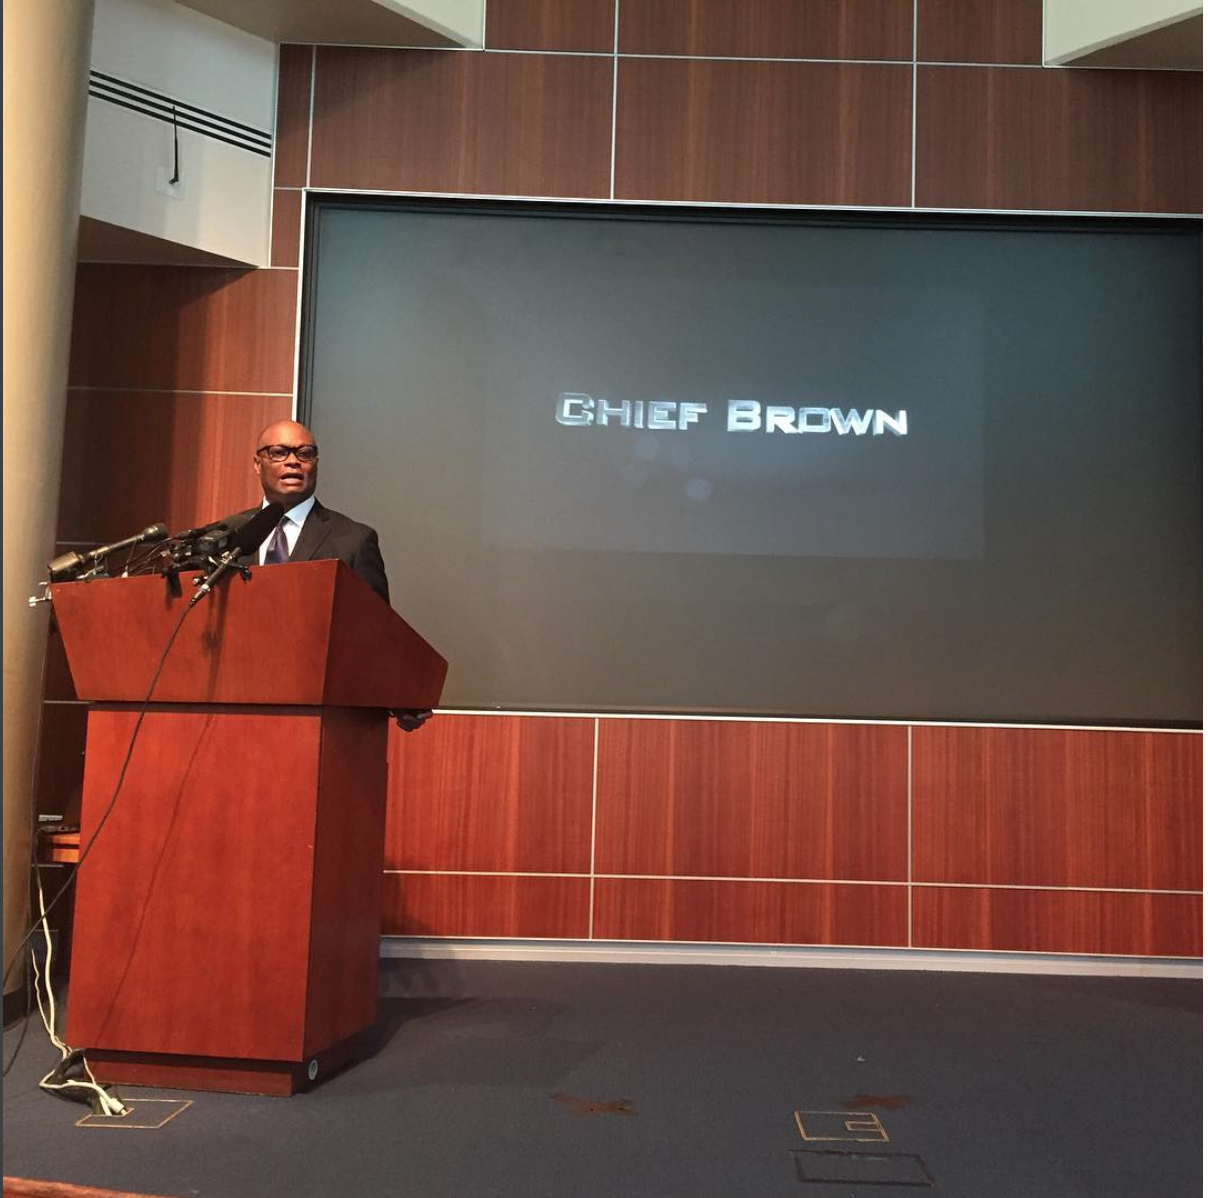 Dallas, TX. Chief Brown speaks to the media about his retirement after 33 years of service with the Dallas Police Department. #dpd  #dallaspd  #dallasstrong  #SnapshotLives